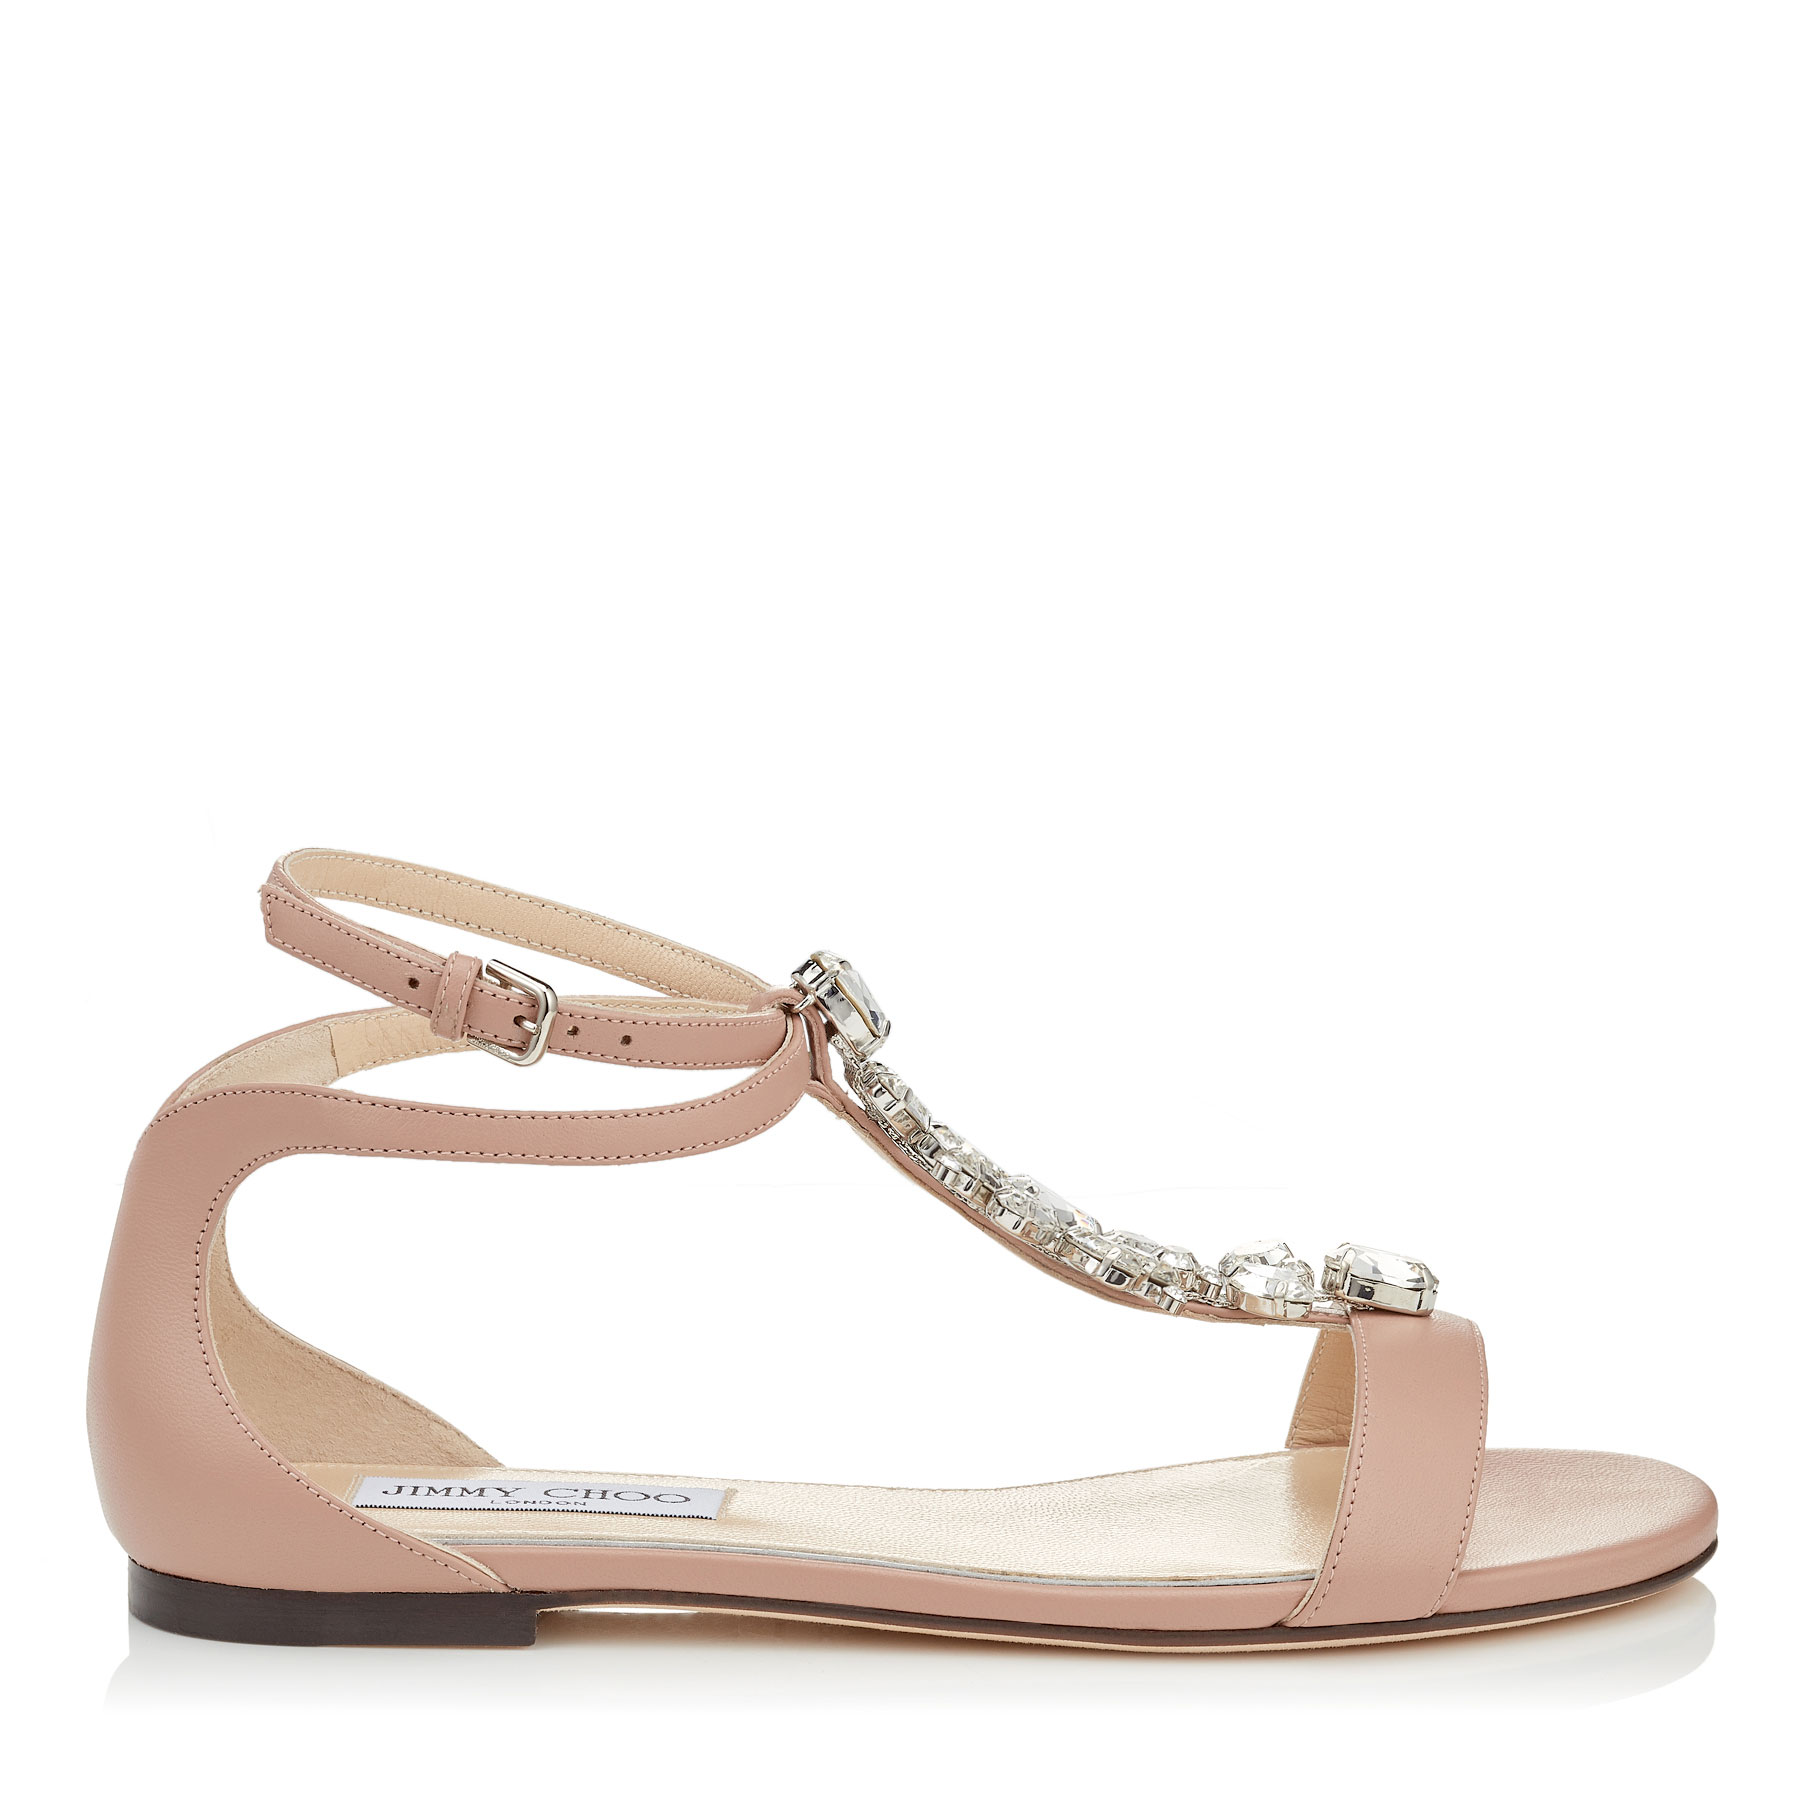 AVERIE FLAT Ballet Pink Nappa Leather Sandals with Silver Crystal Piece by Jimmy Choo